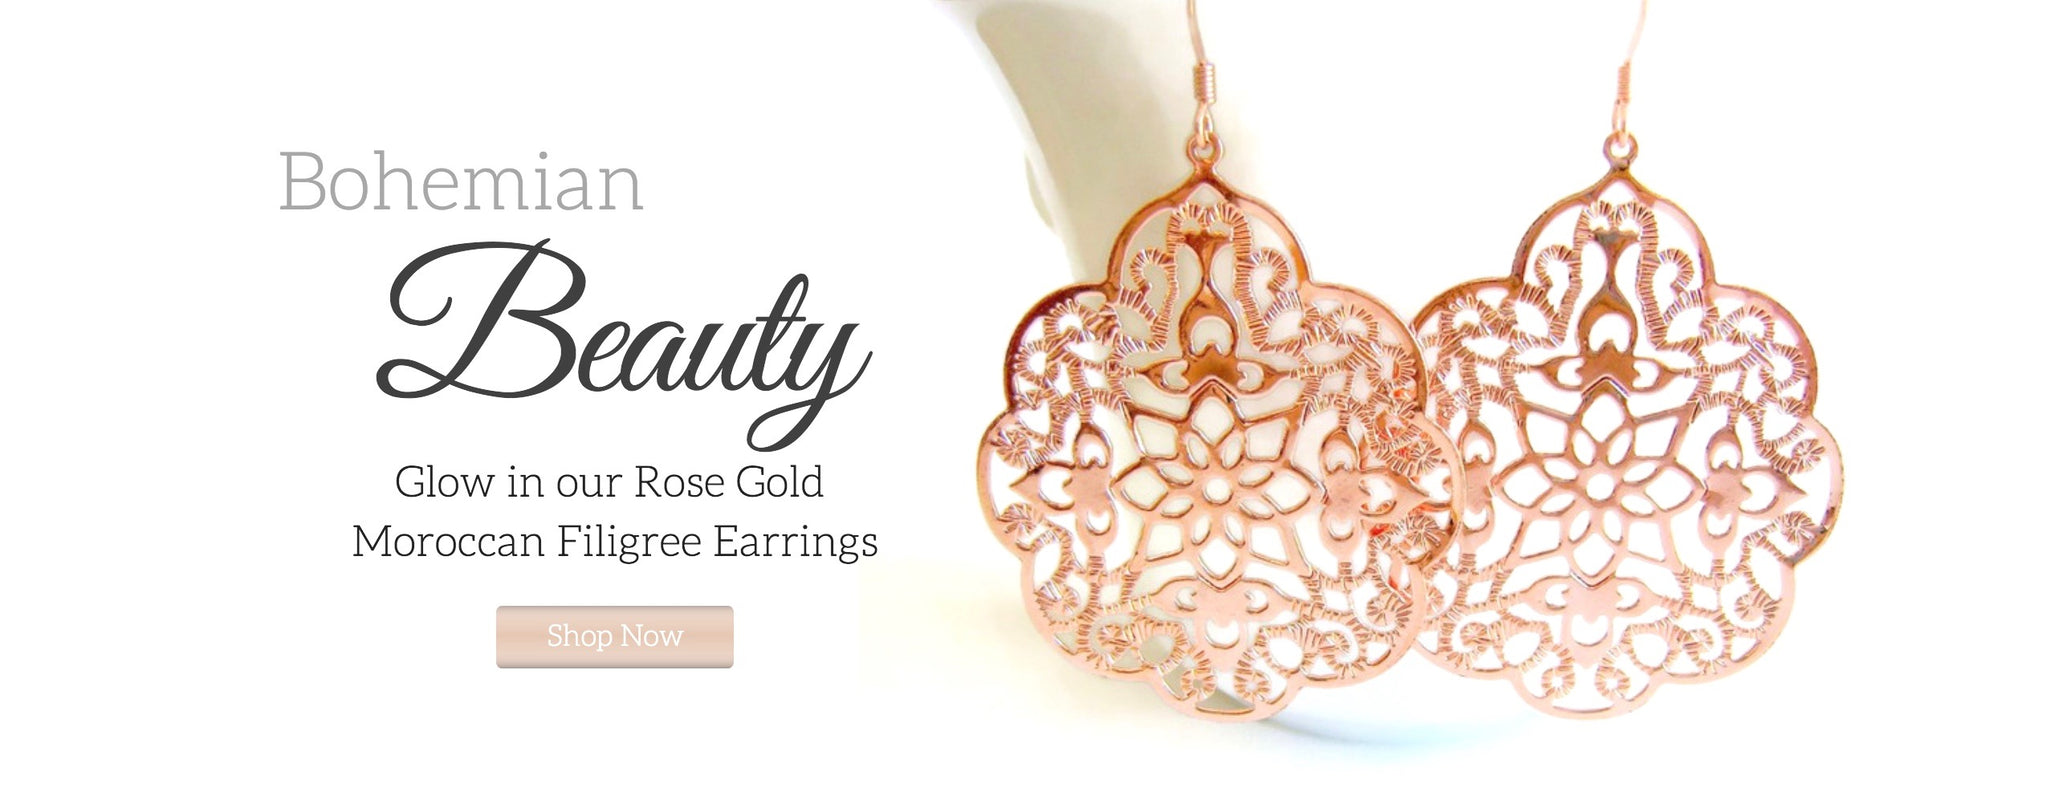 Rose Gold Filigree Earrings Image